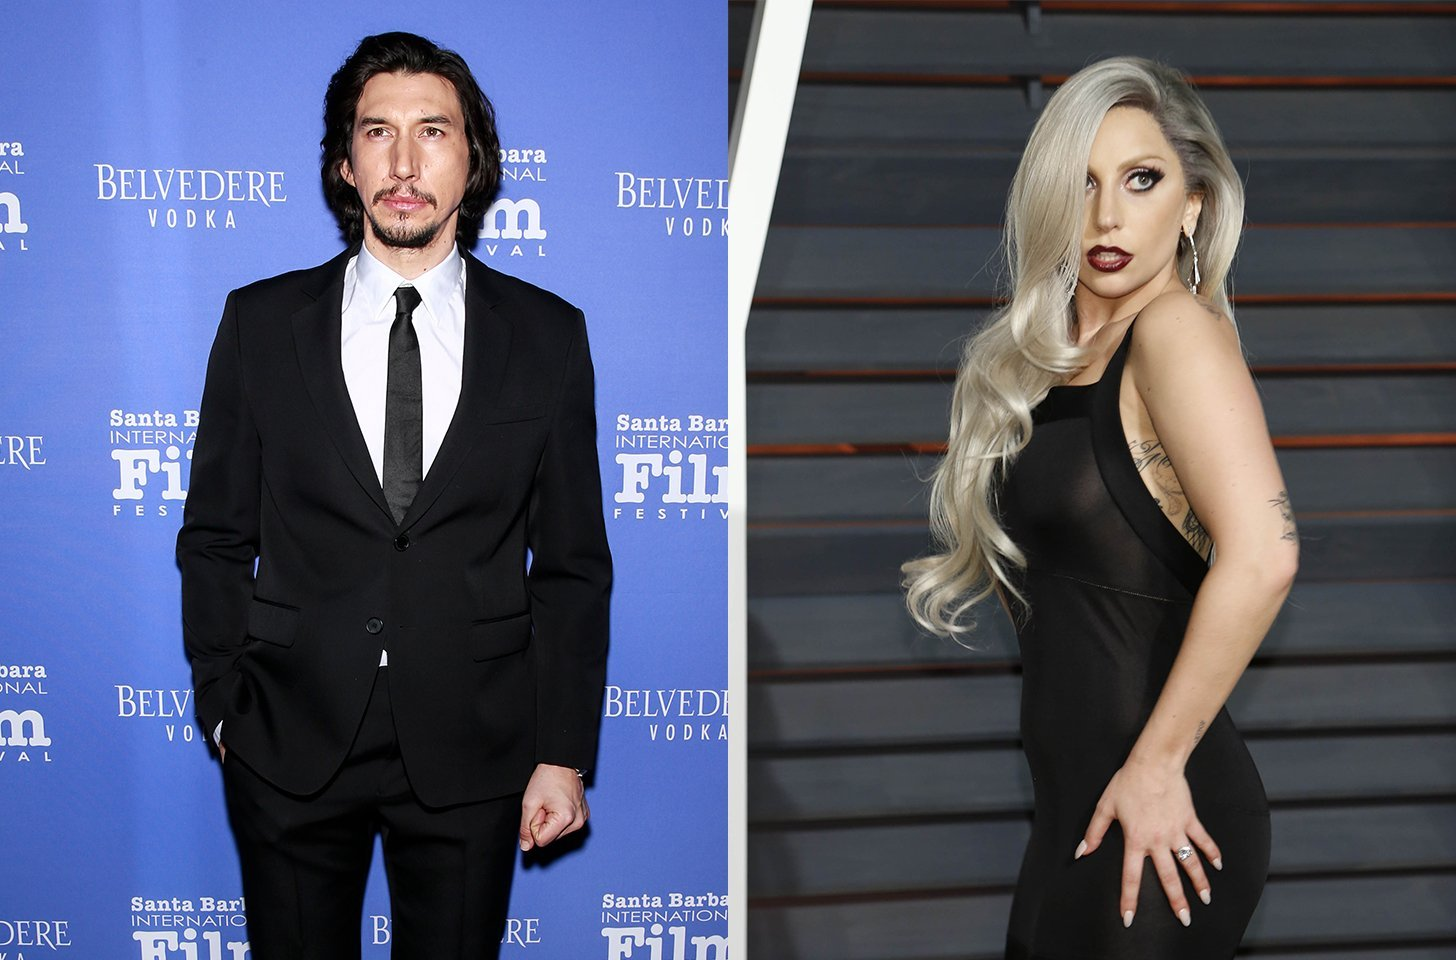 Lady Gaga and Adam Driver Look Awfully Cozy Together On Their Movie Set And Now I'm Suspicious